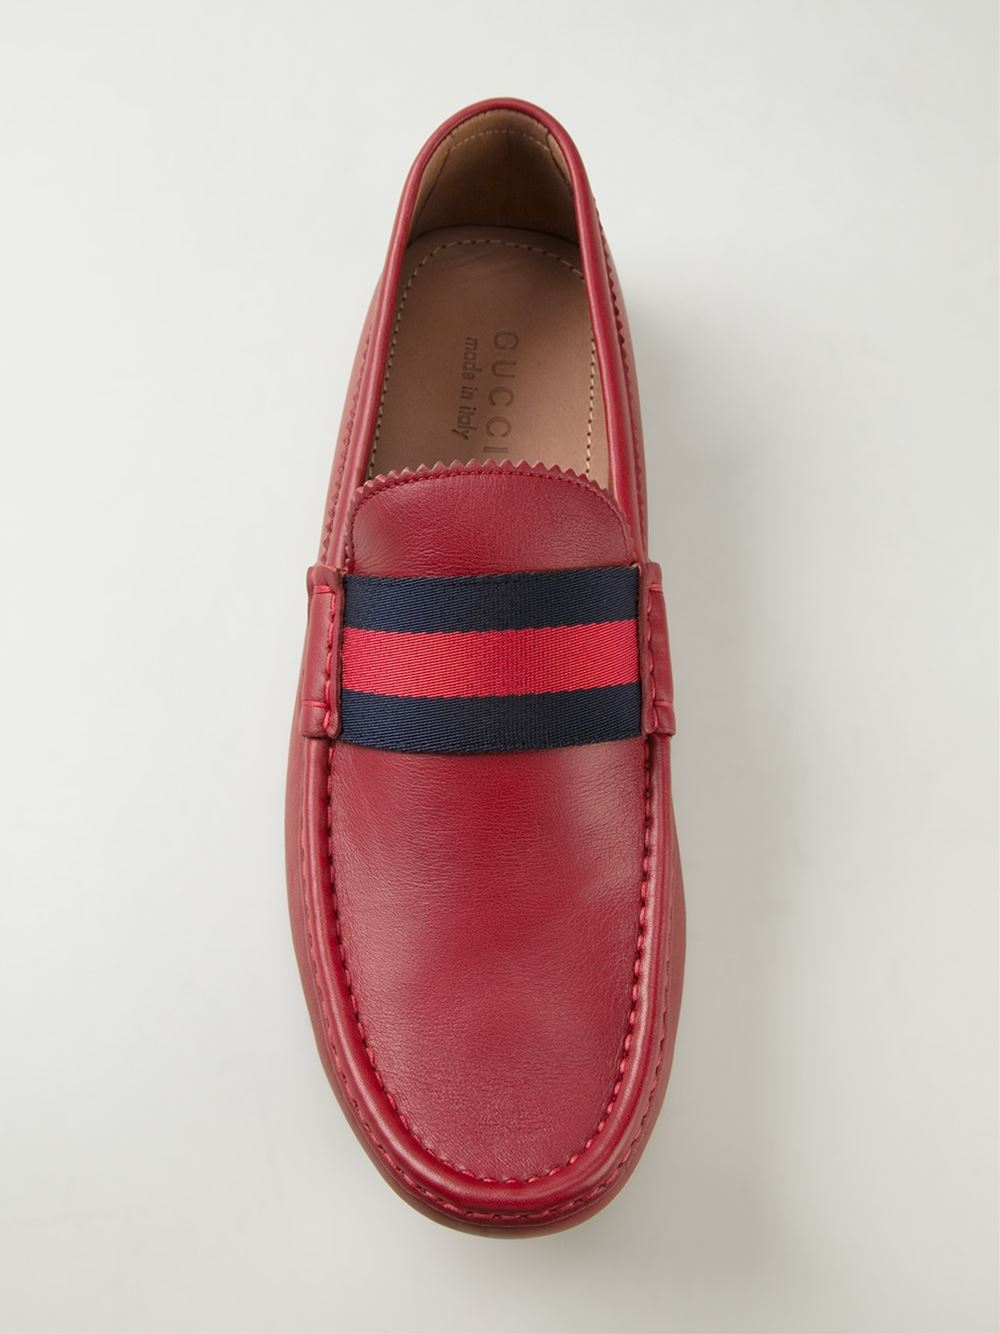 Gucci Mens Driving Shoes